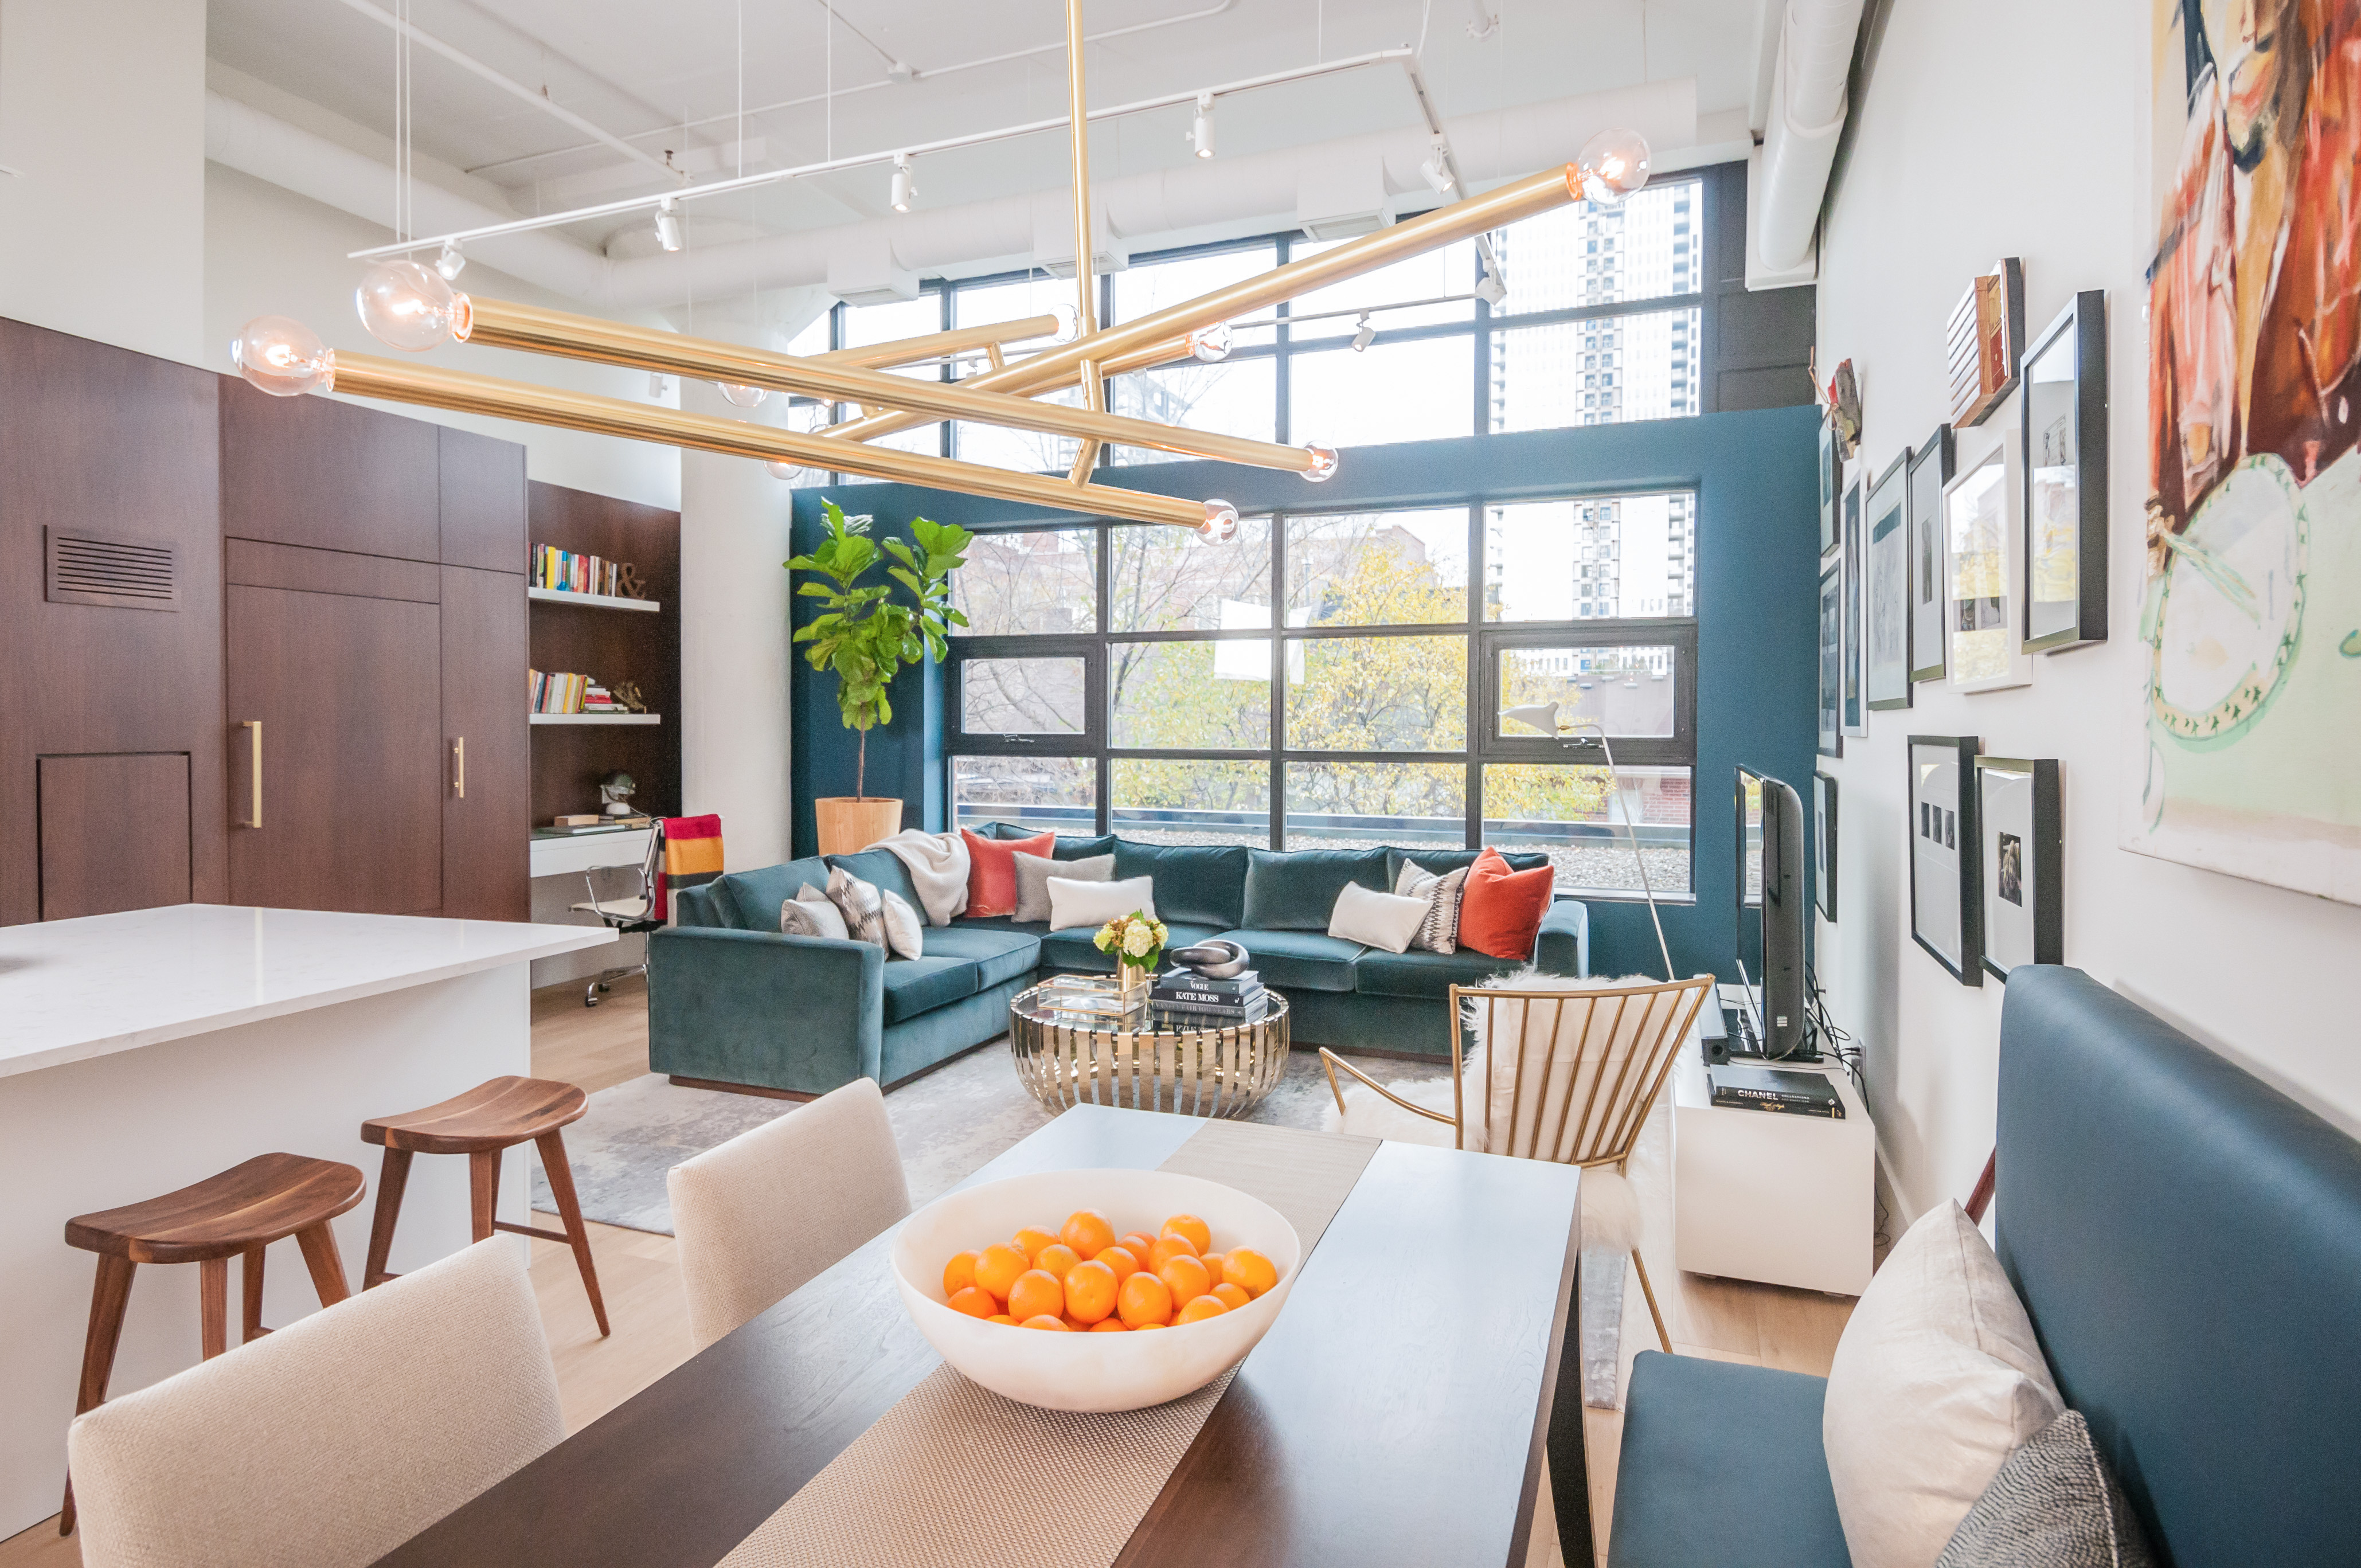 A Rarely Offered Spectacular 150K Renovation In 2016 Of 1150 SQFT Unit The Lofts At 90 Sumach